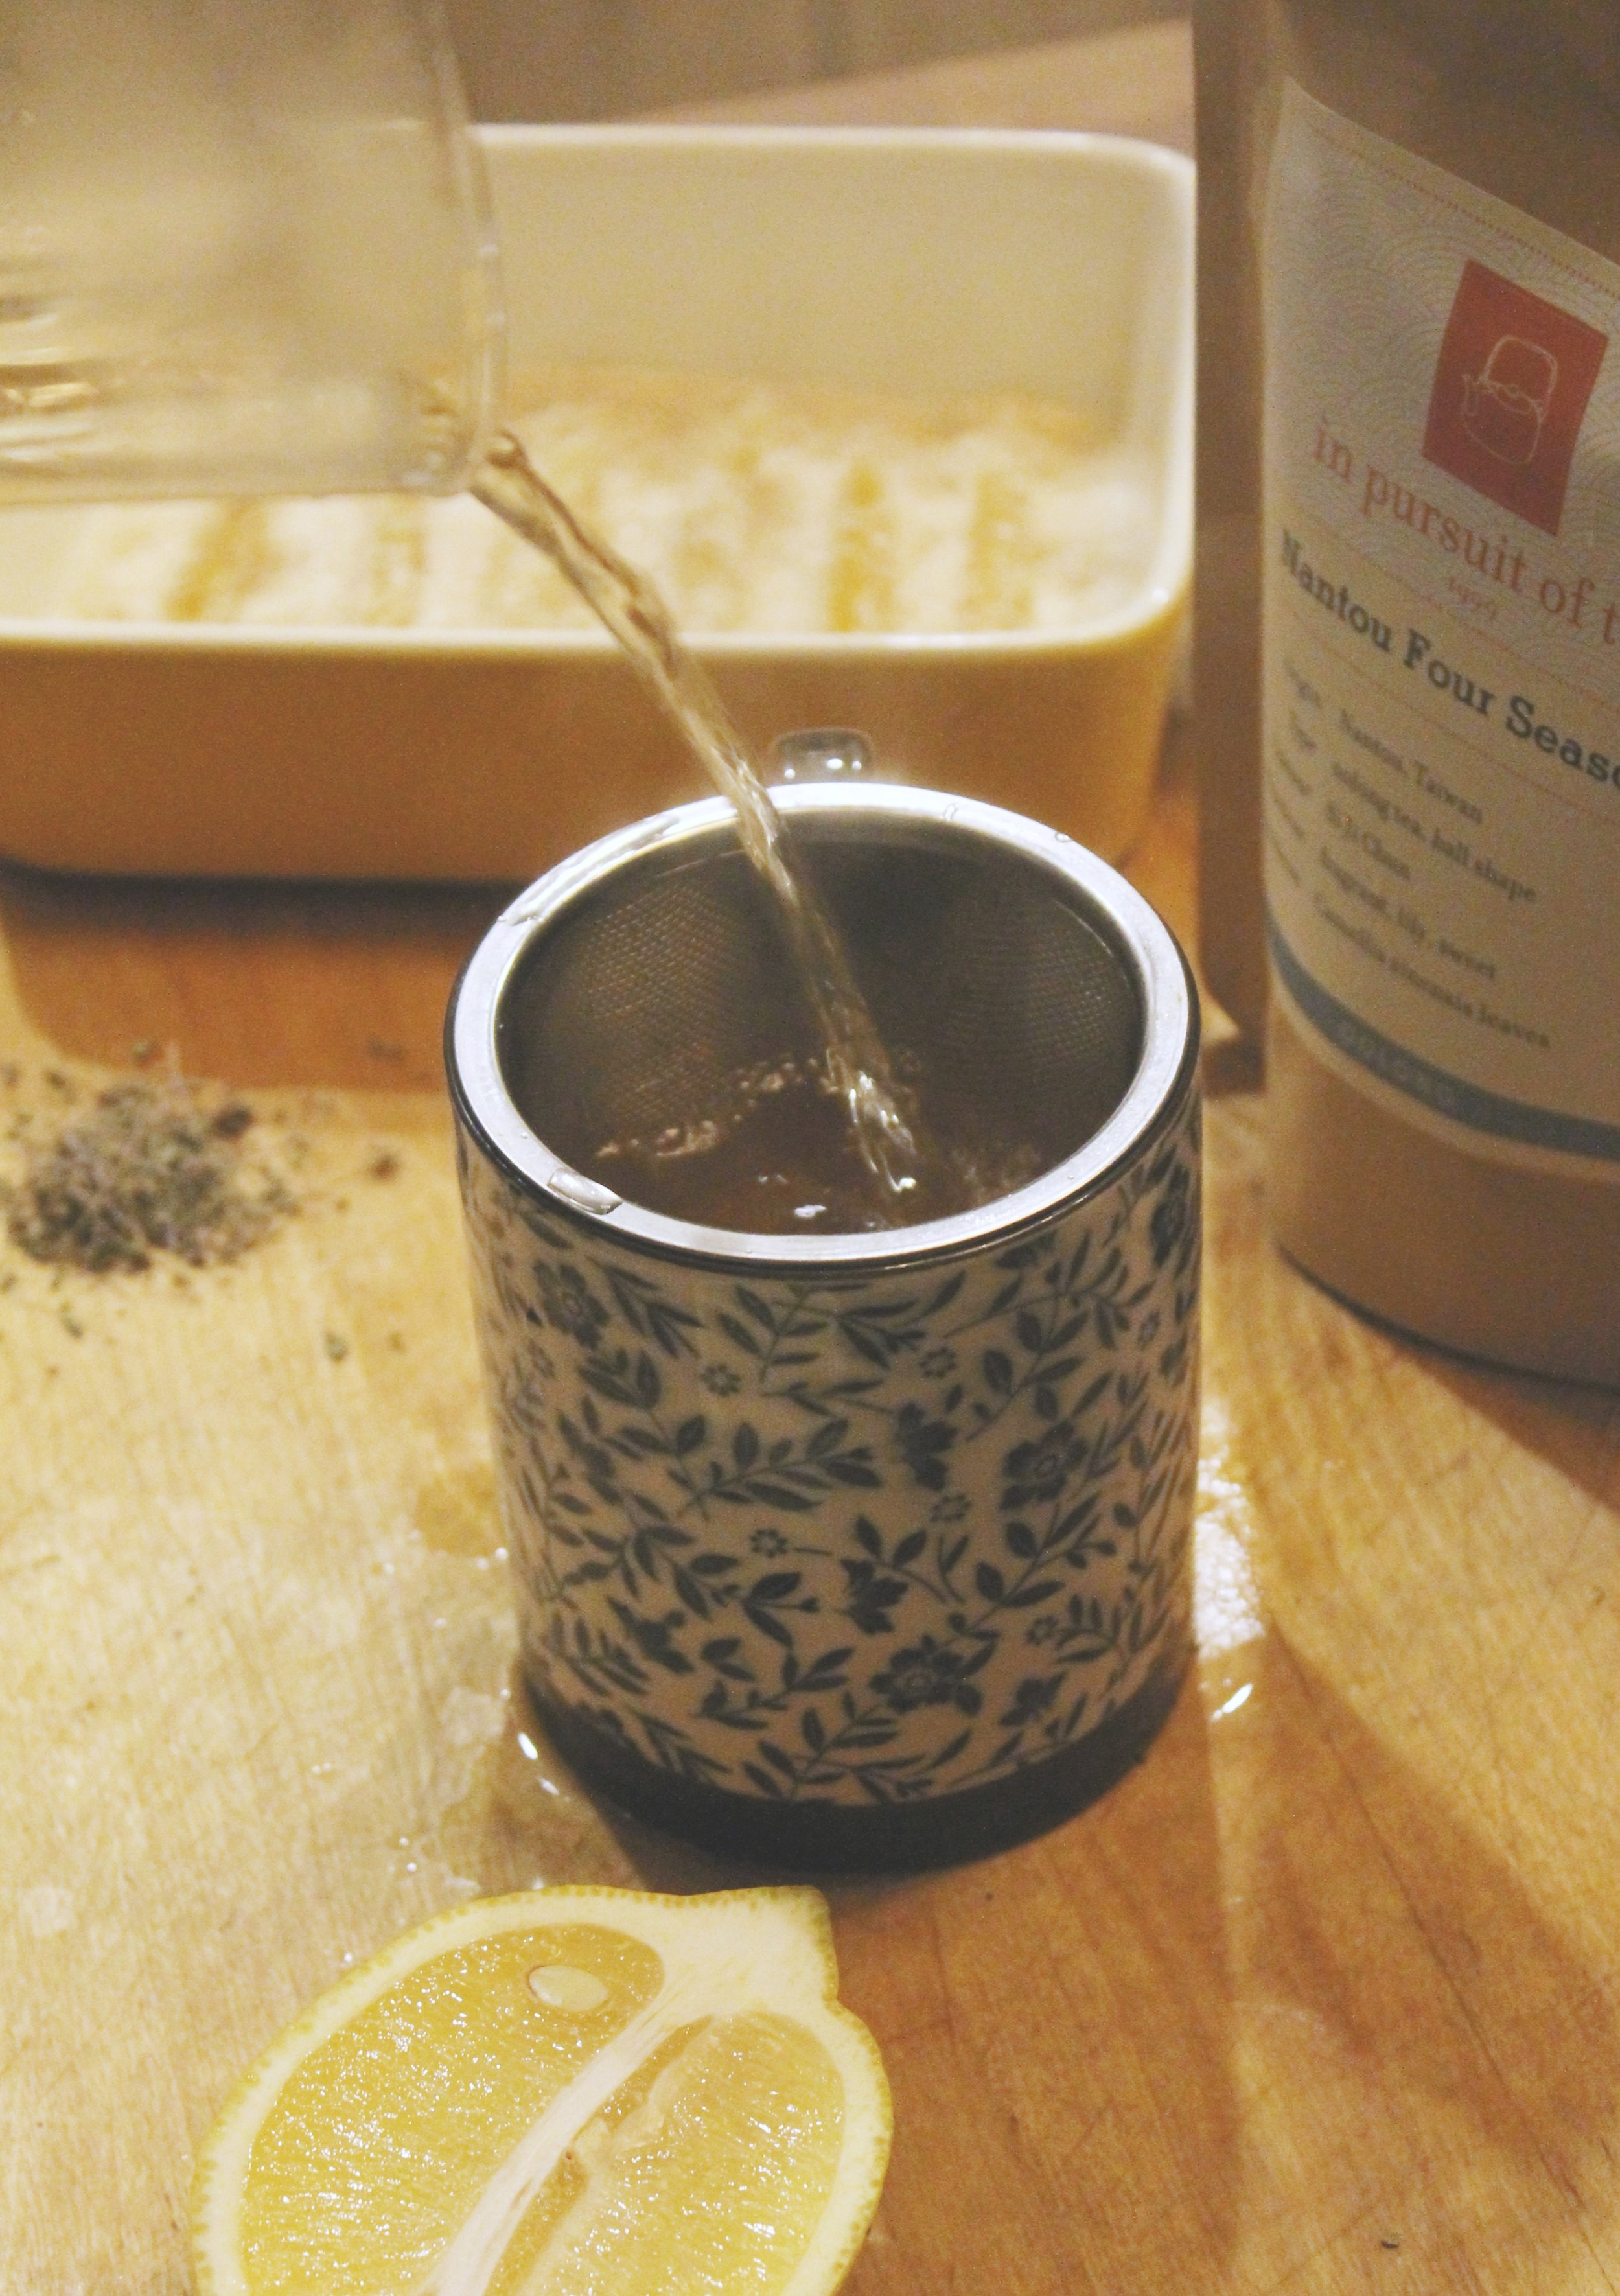 Serve immediately in mug using a strainer.Discard tea,basil, and lemon rinds in compost.